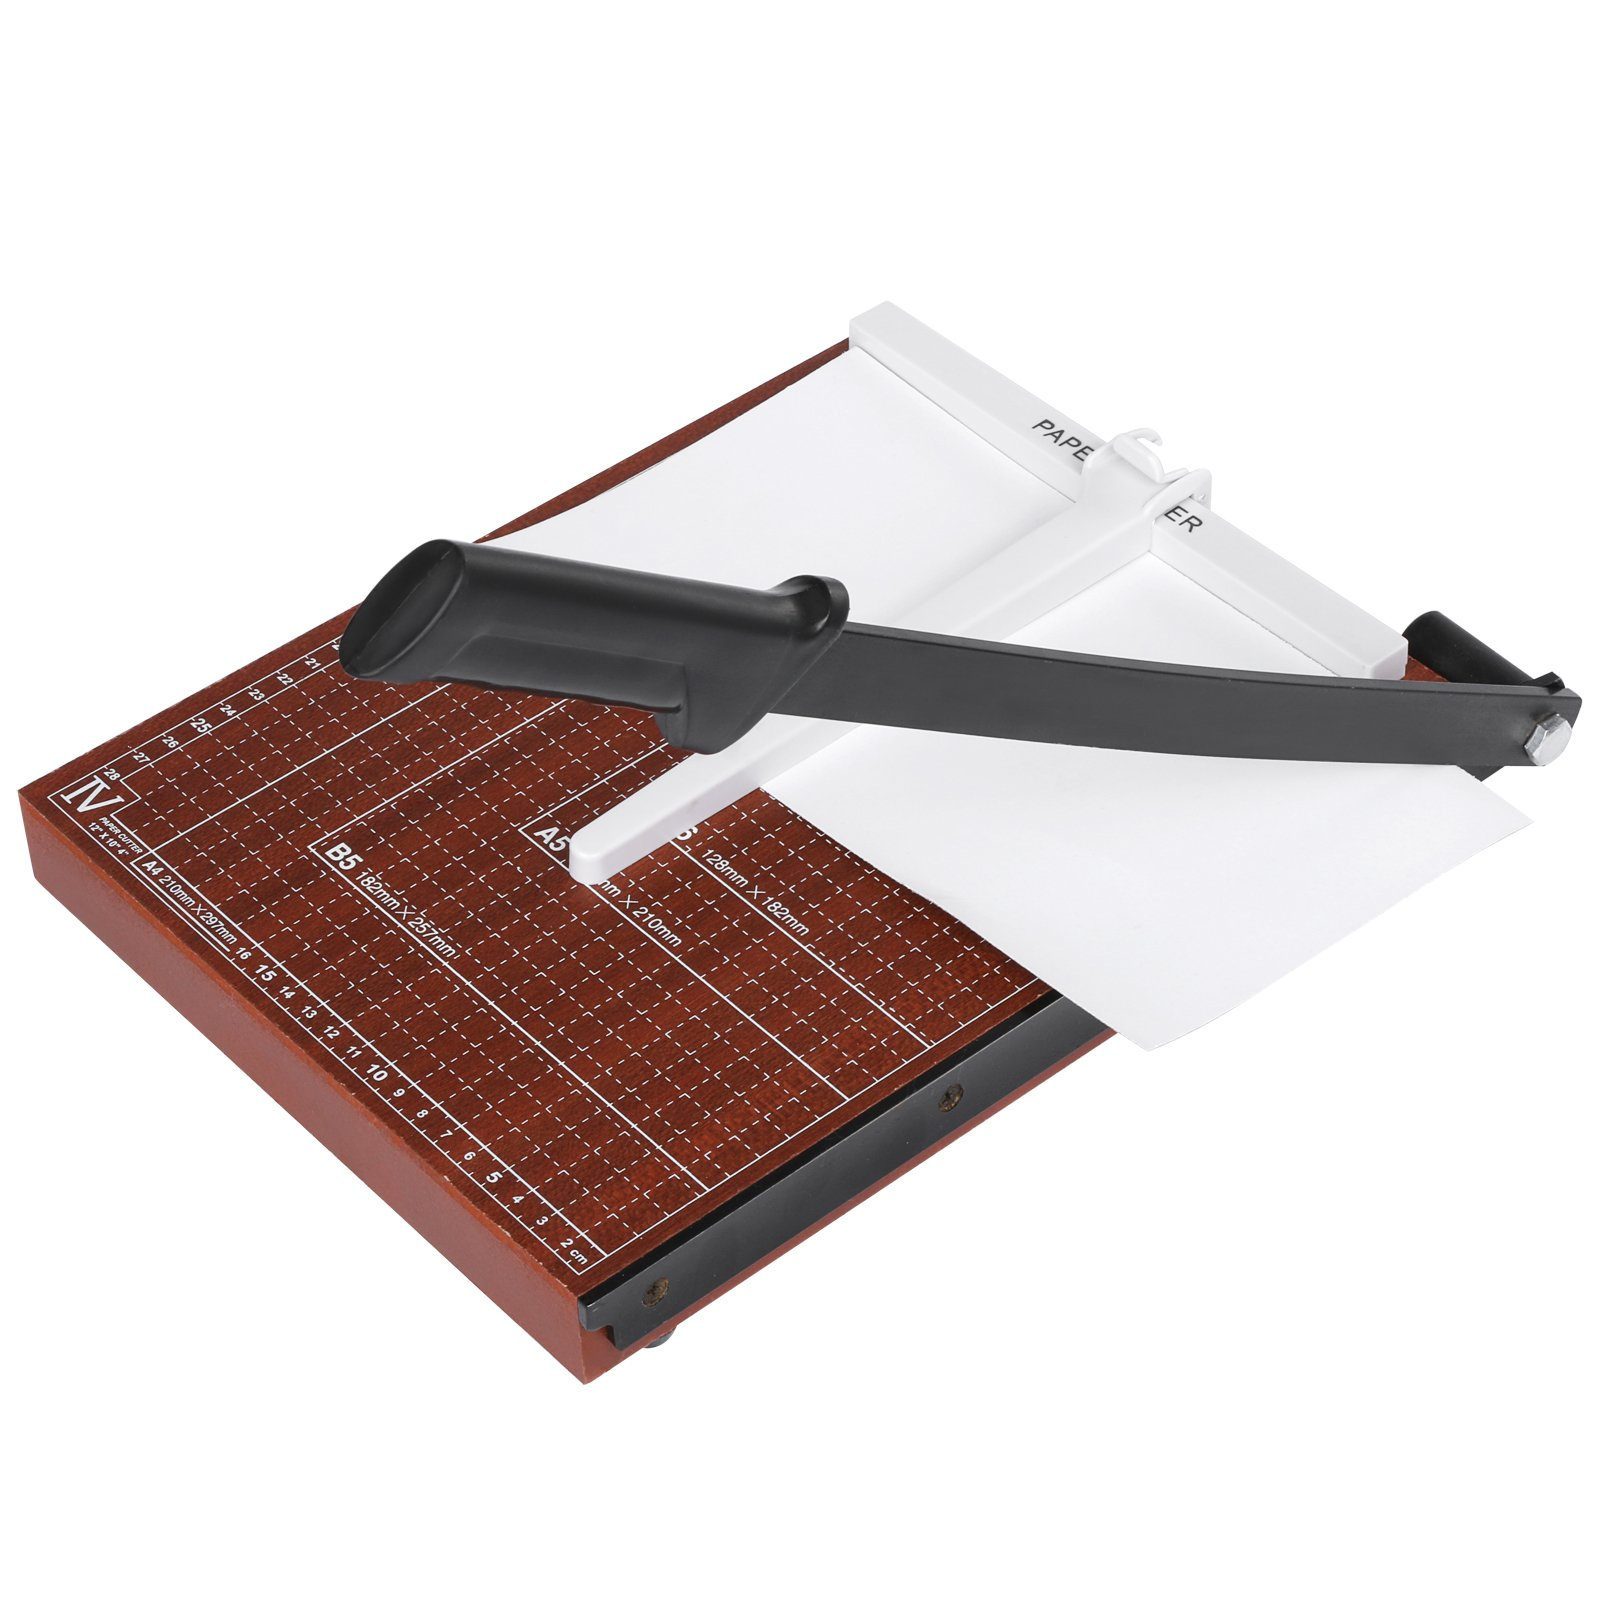 Heavy Duty A4, B5, A5, B6, B7 Guillotine Paper Cutter Home Office Professional Guillotine Trimmer Photo Paper Cutting Machine (Red-12.7 x 9.9 x 1.2inch)